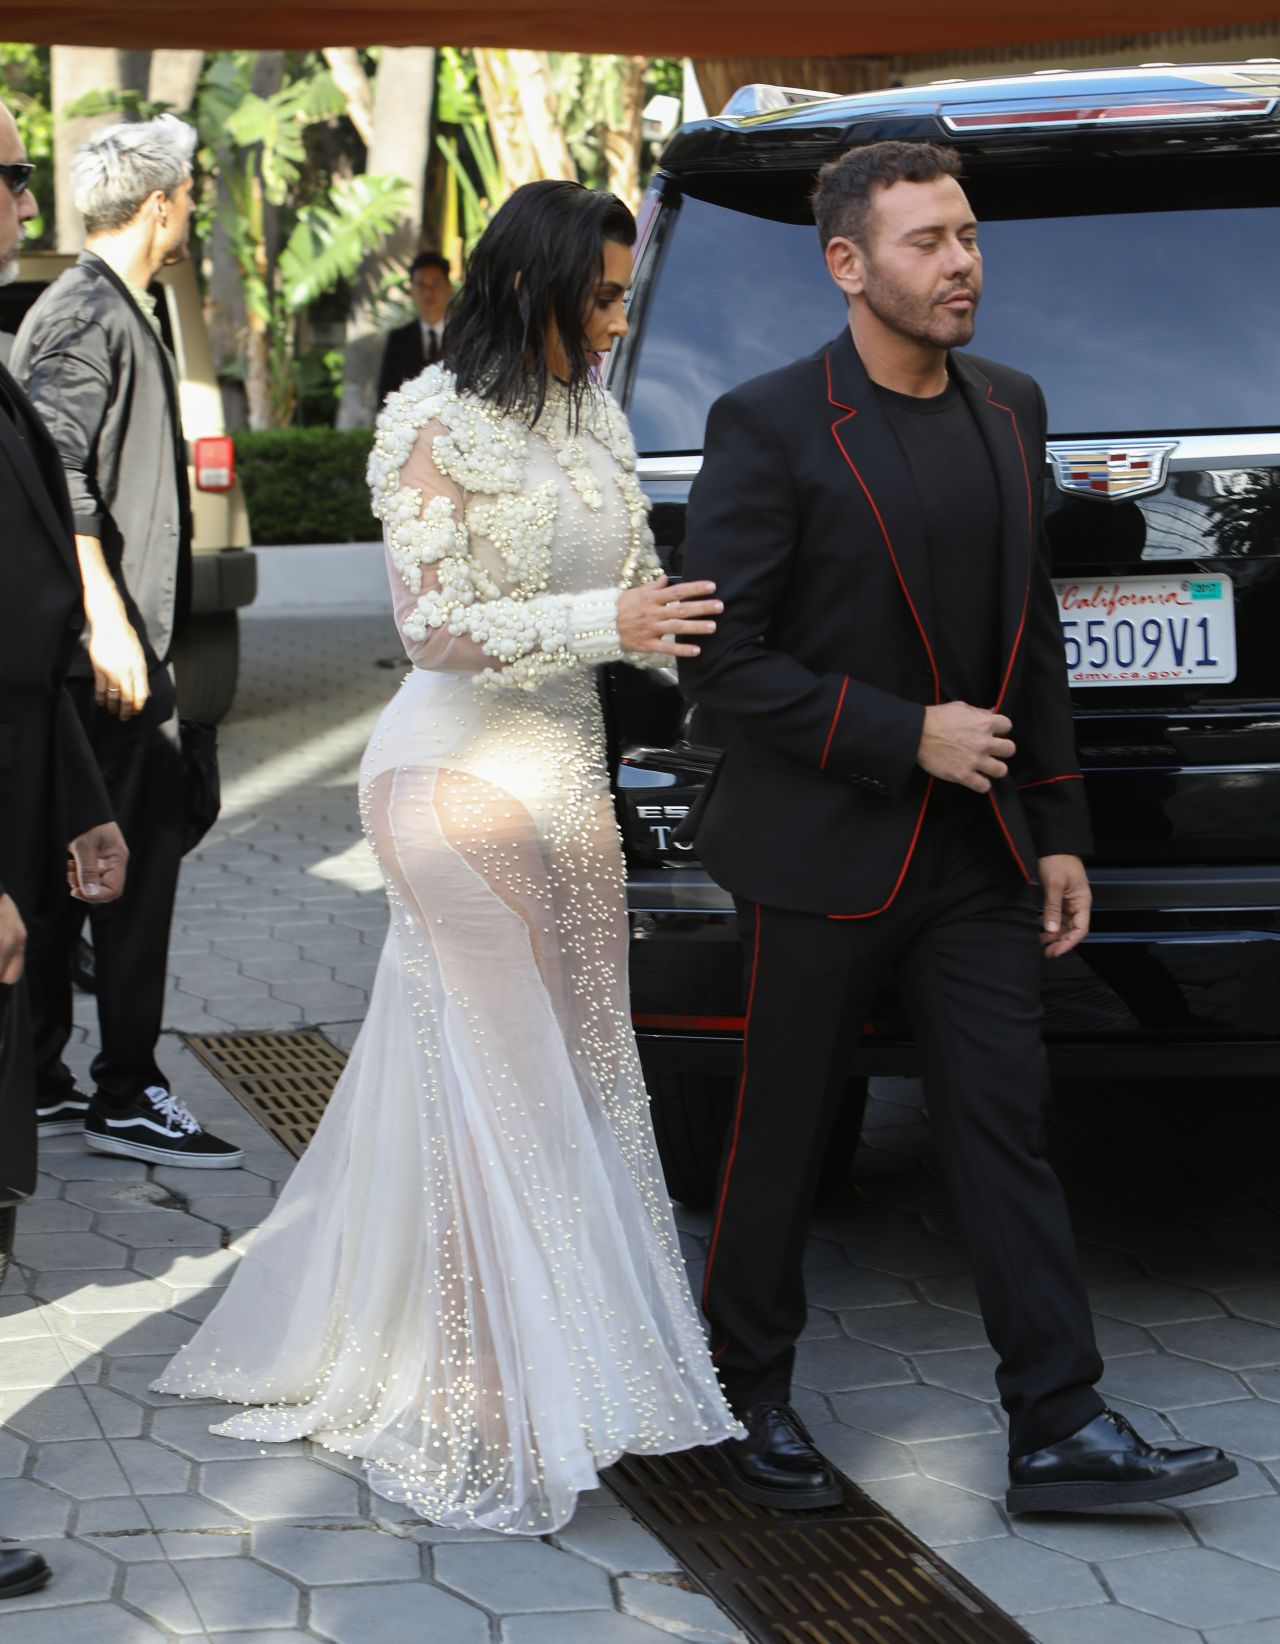 Kim Kardashian in Sheer Givenchy Gown - at Dinner With Mert Alas 4/2 ...